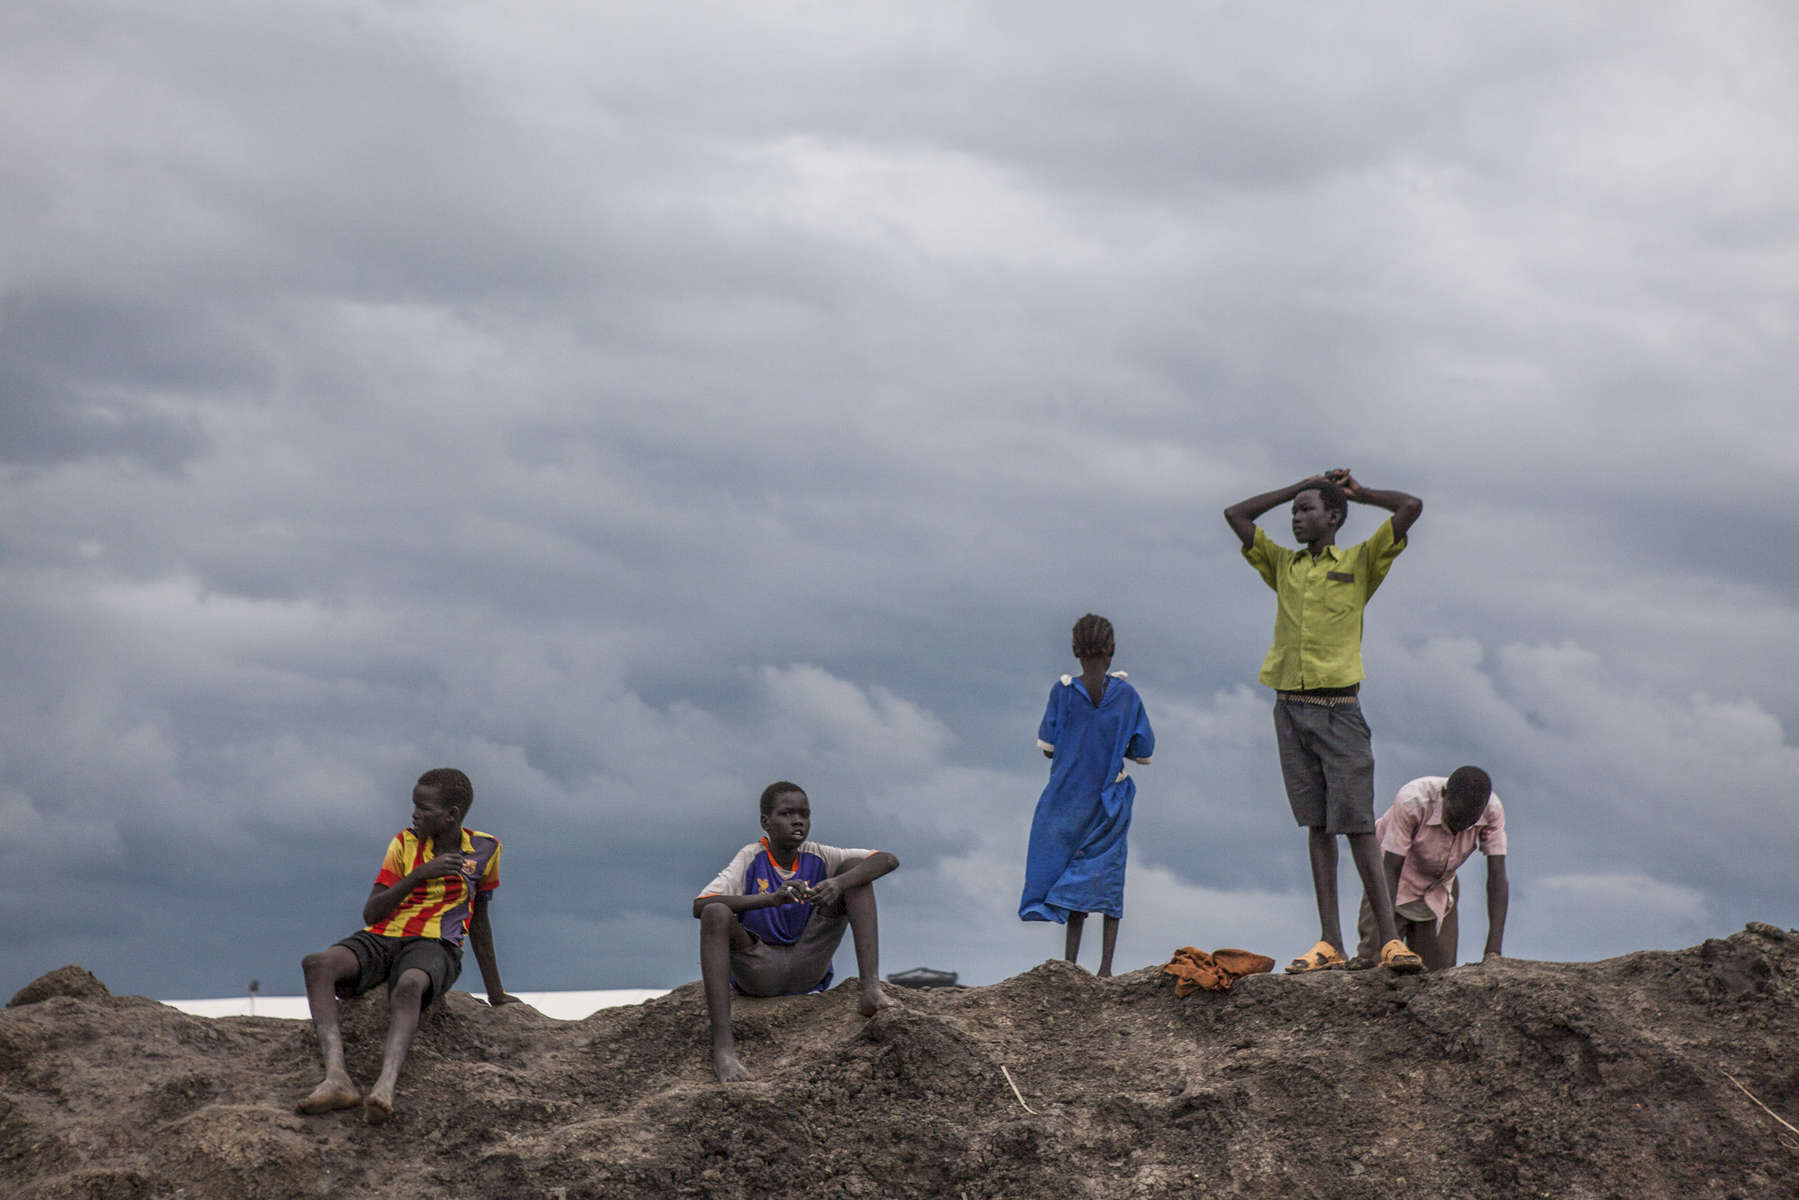 Children stand on top of a berm at the Protection of Civilians (POC) site at the United Nations Mission in South Sudan (UNMISS) compound in Malakal, South Sudan on Wednesday, July 13, 2016. The Malakal POC site houses over 32,000 displaced people mainly from the Shilluk and Nuer tribes. In February of this year, members of the Dinka tribe, who resided in the camp at the time, carried out a coordinated attack within the site leading to the destruction of hundreds of shelters and many deaths. Since then, most members of the Dinka tribe have fled to Malakal town where they occupy the homes of those still displaced.